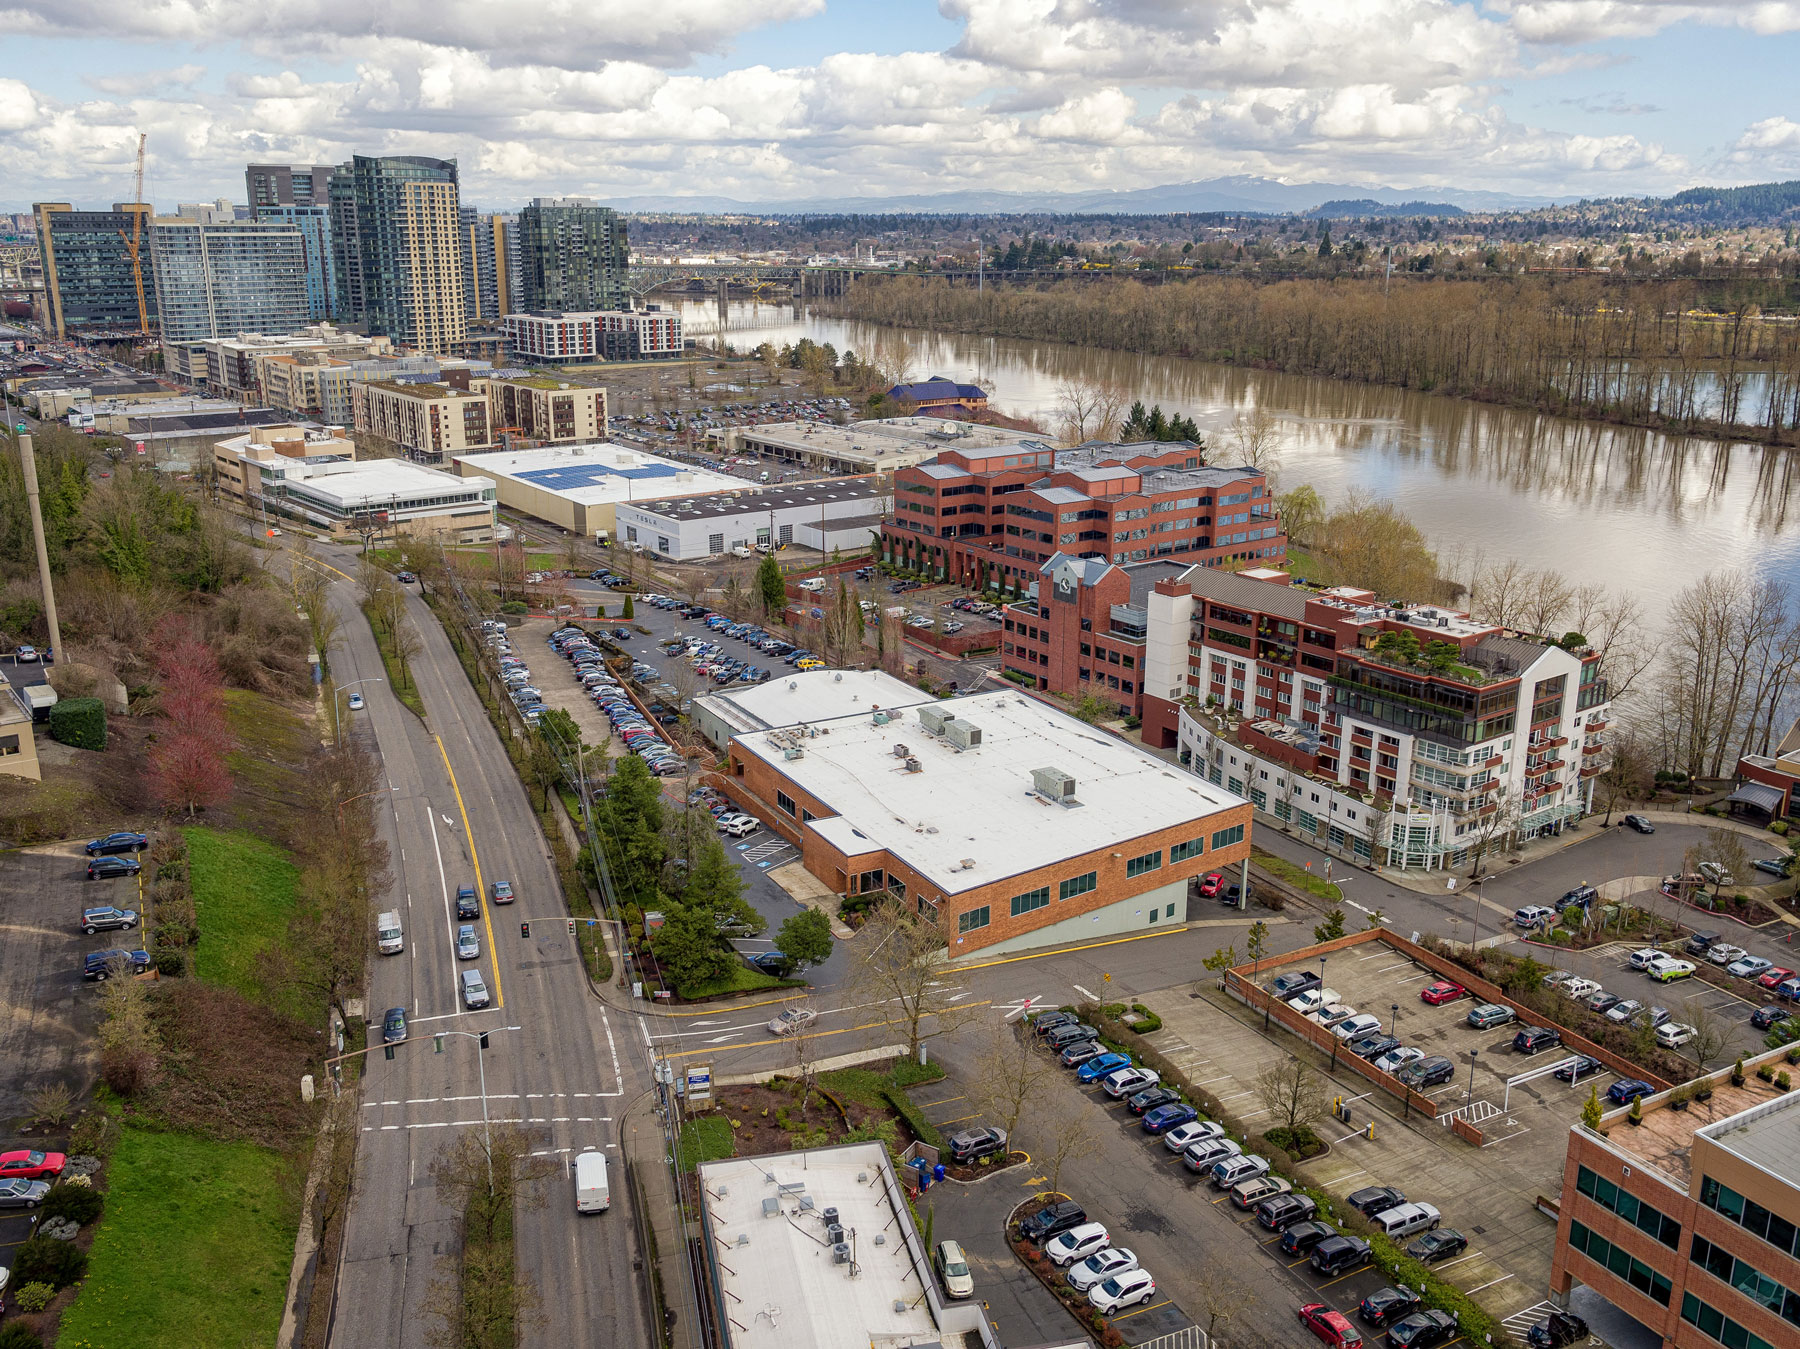 aerial view of office building with a lot of parking near river in Portland, Oreagon